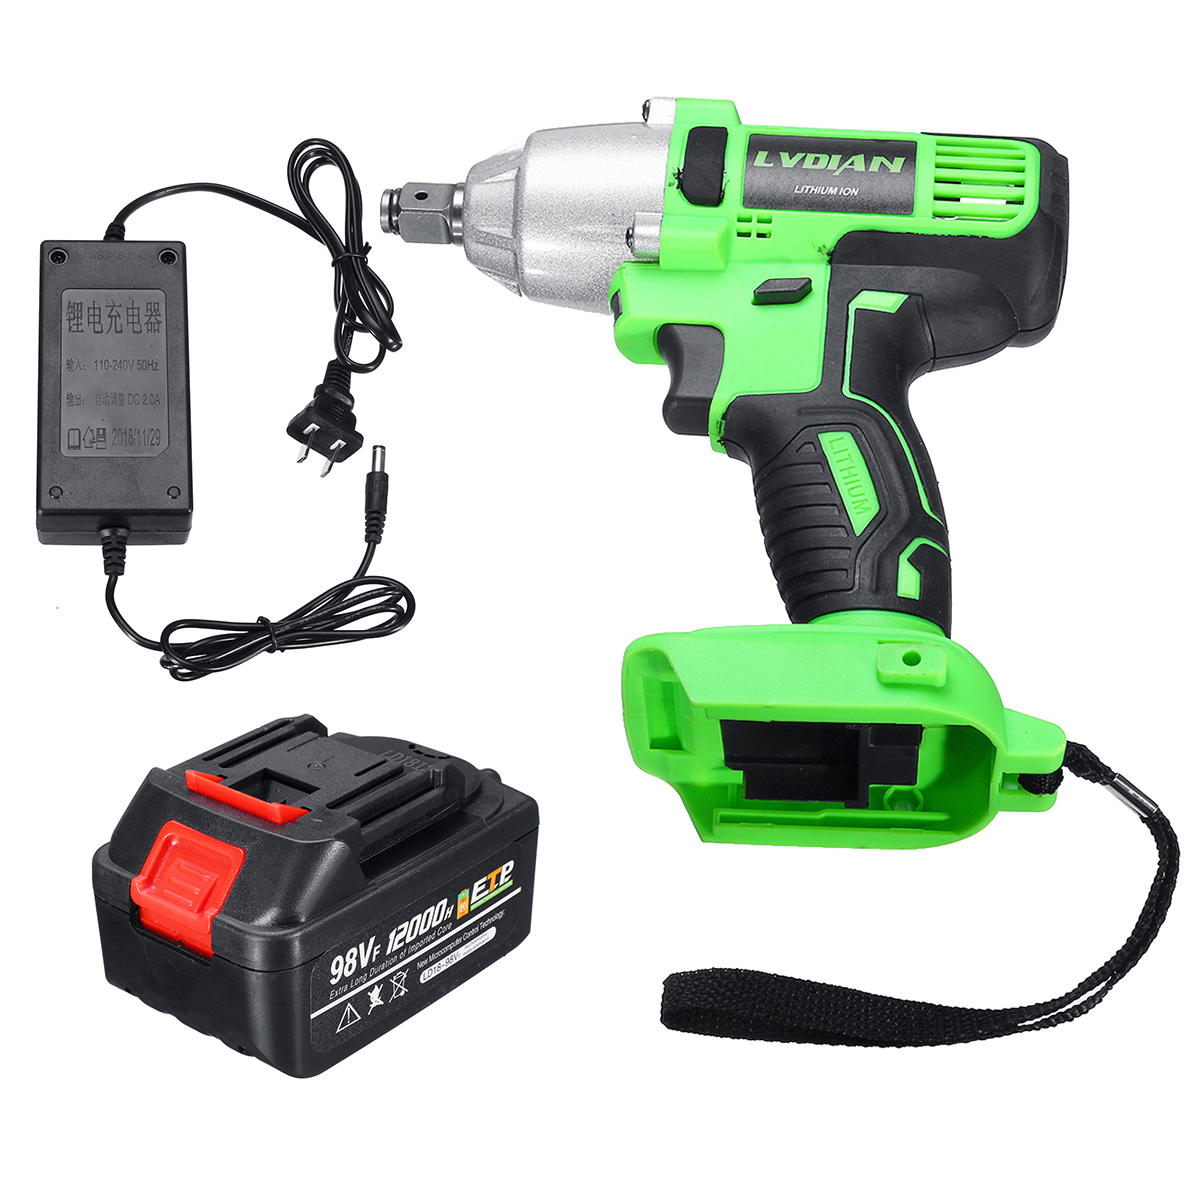 98VF 110-240V Electric Wrench 12000mAh Electric Power Wrench Tool